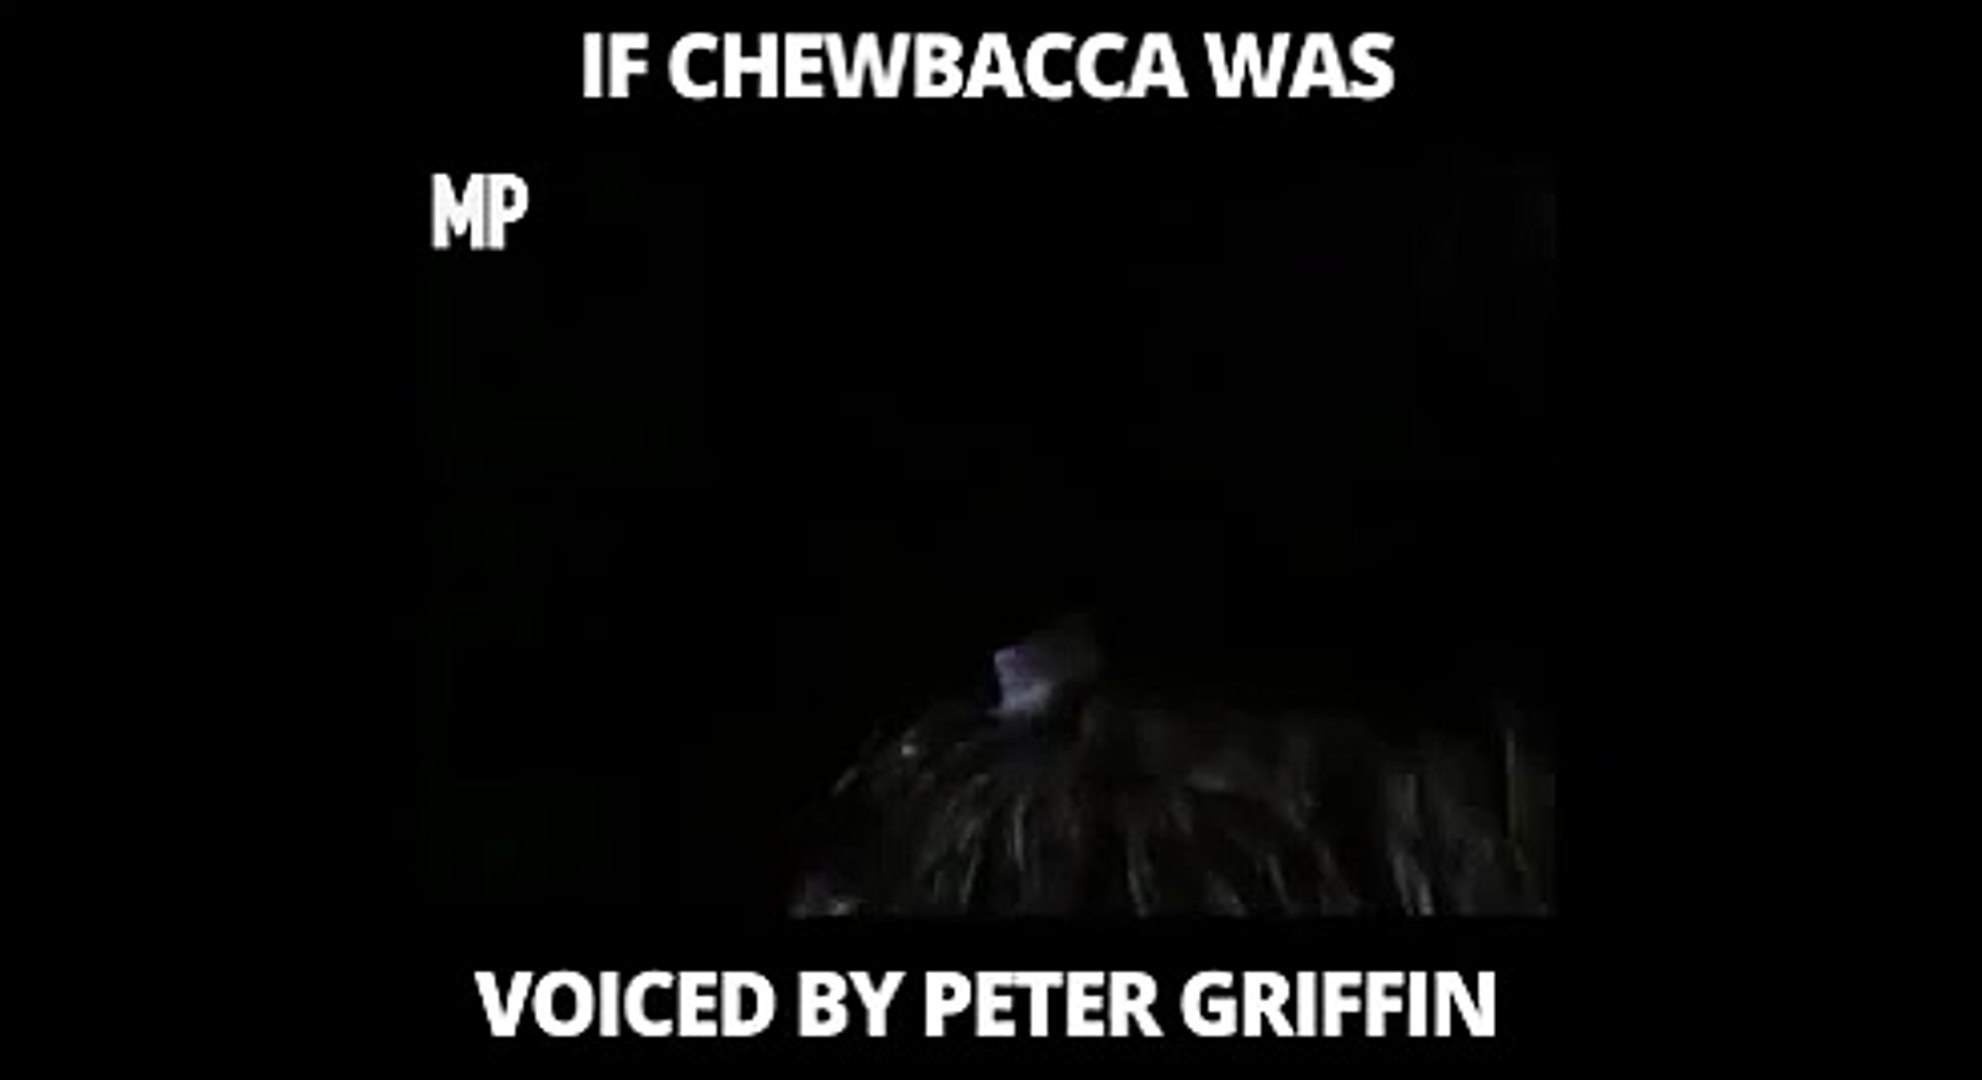 Peter Griffin: Video Mashup Surfaces of Family Guy Character Voicing Chewbacca From Star Wars